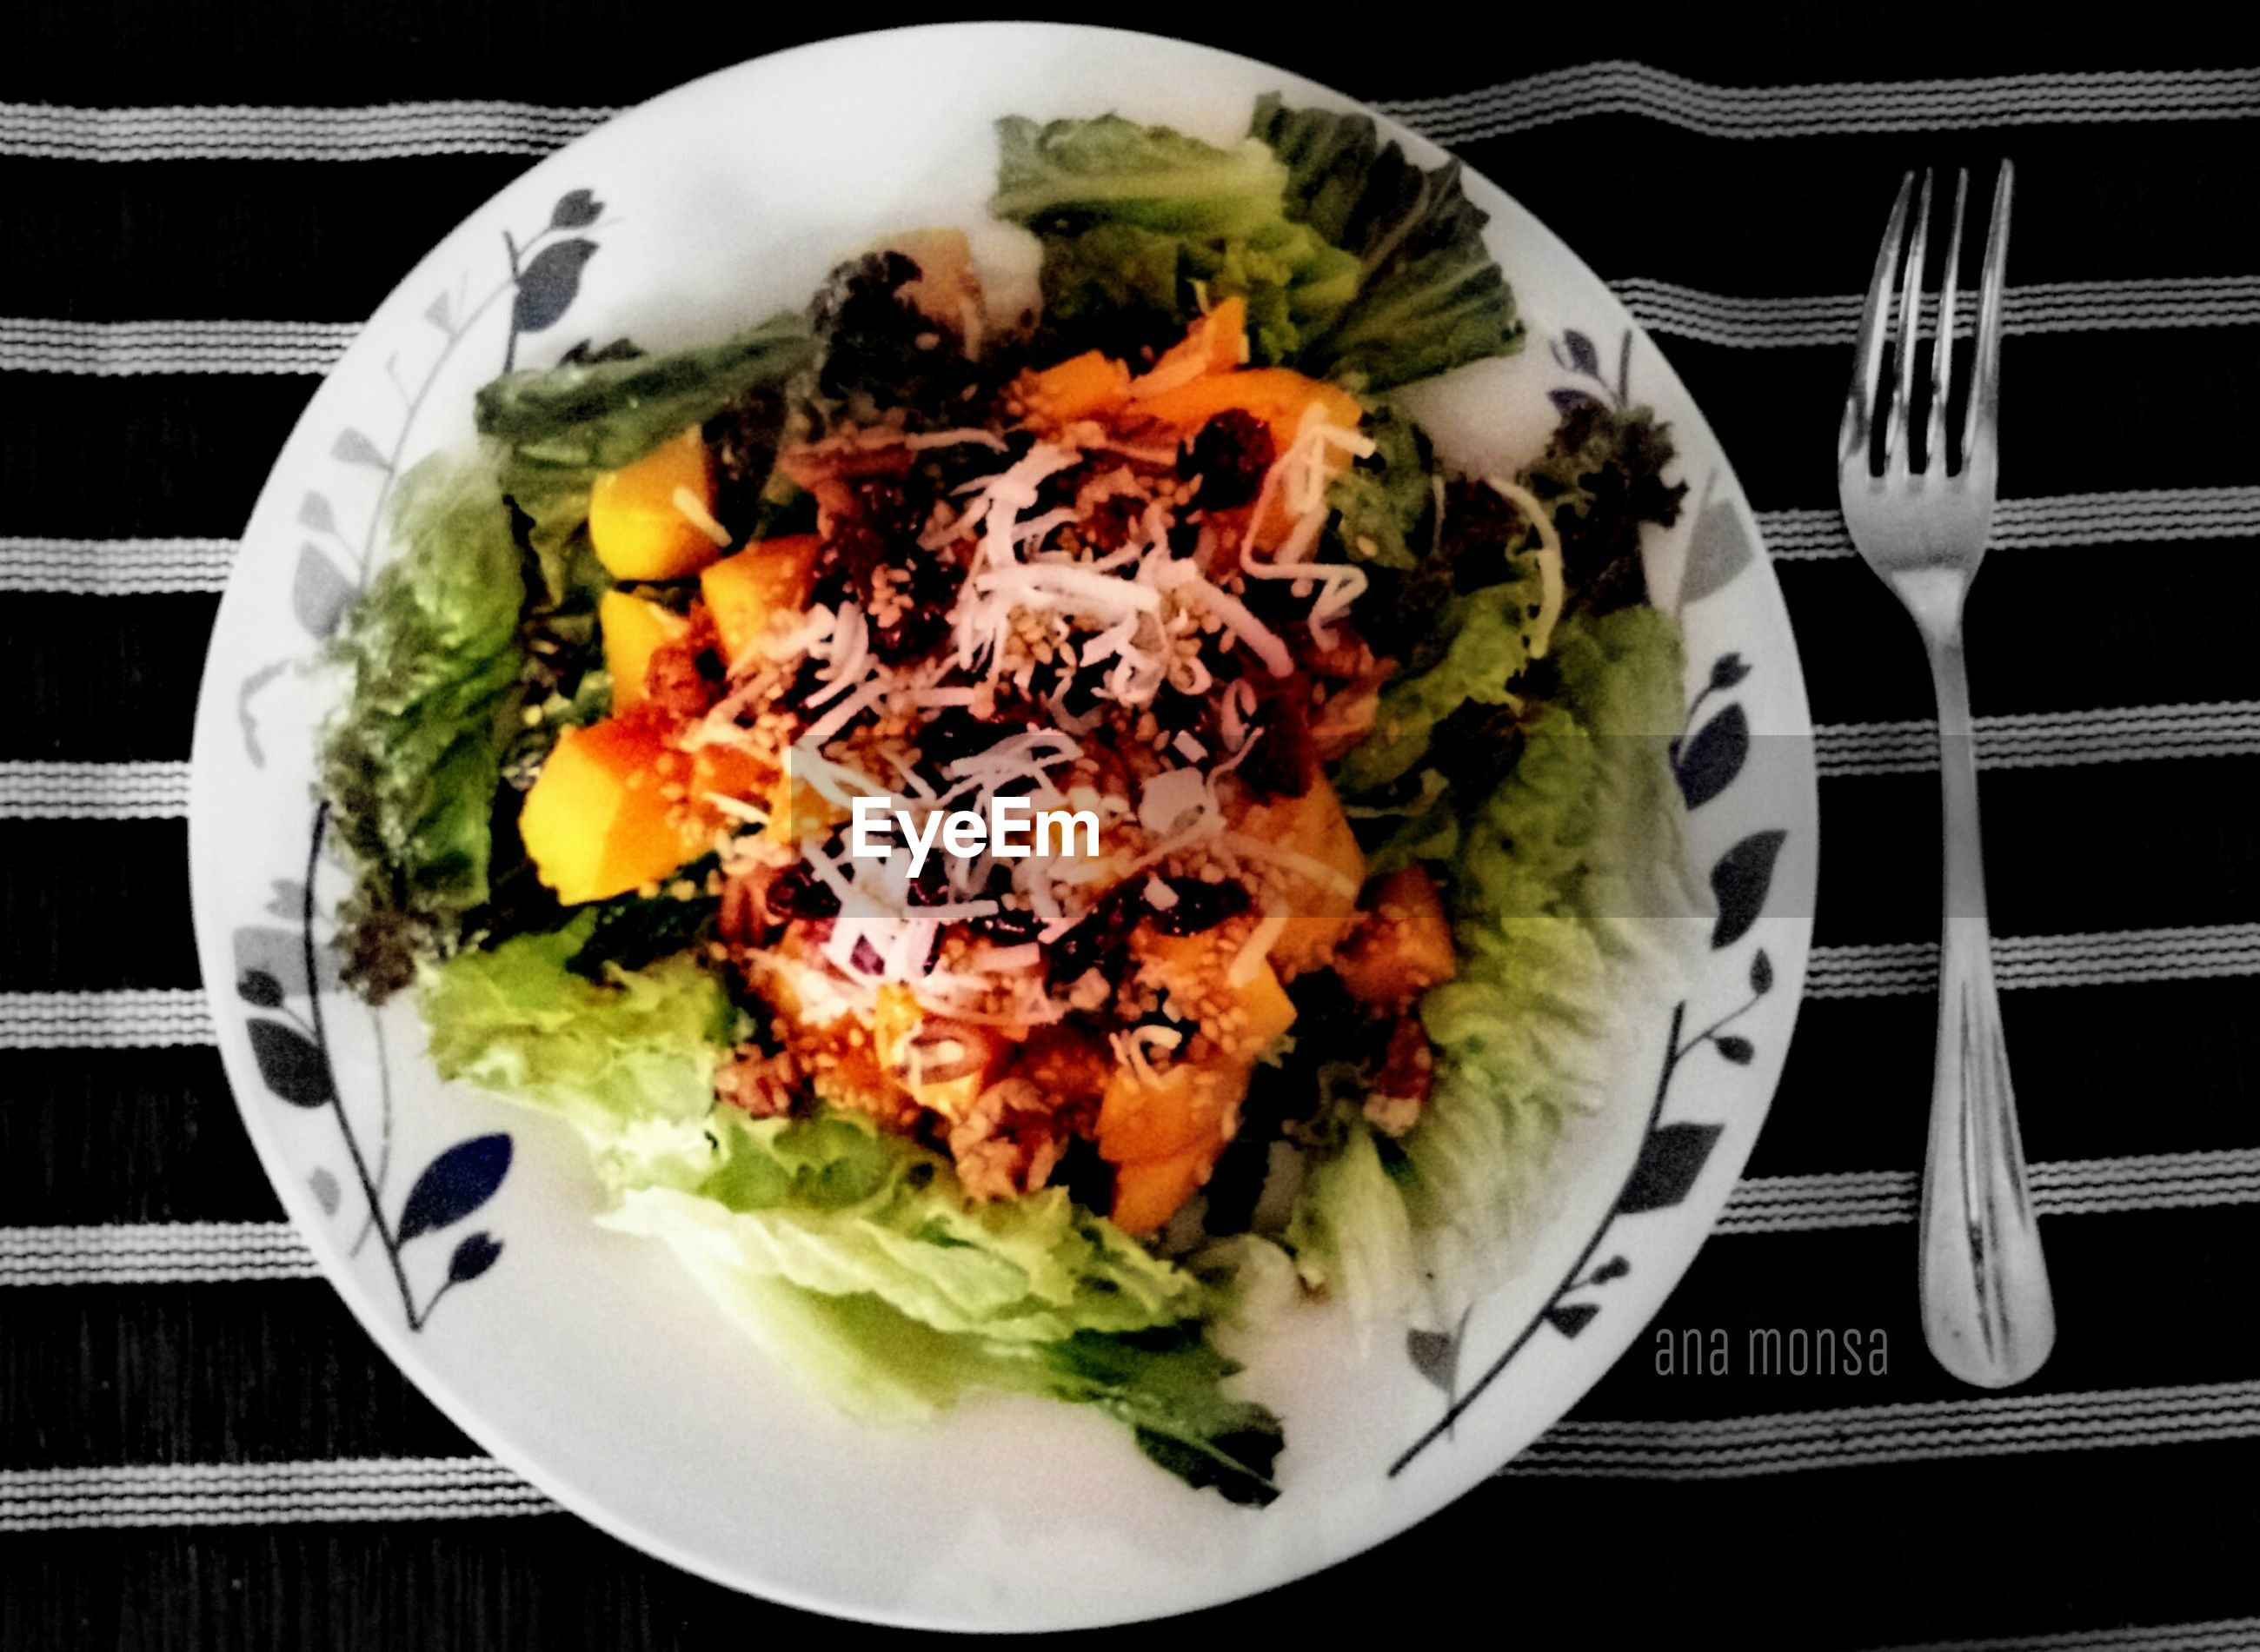 food, food and drink, freshness, indoors, ready-to-eat, plate, healthy eating, still life, table, meal, vegetable, high angle view, salad, directly above, serving size, meat, close-up, served, indulgence, tomato